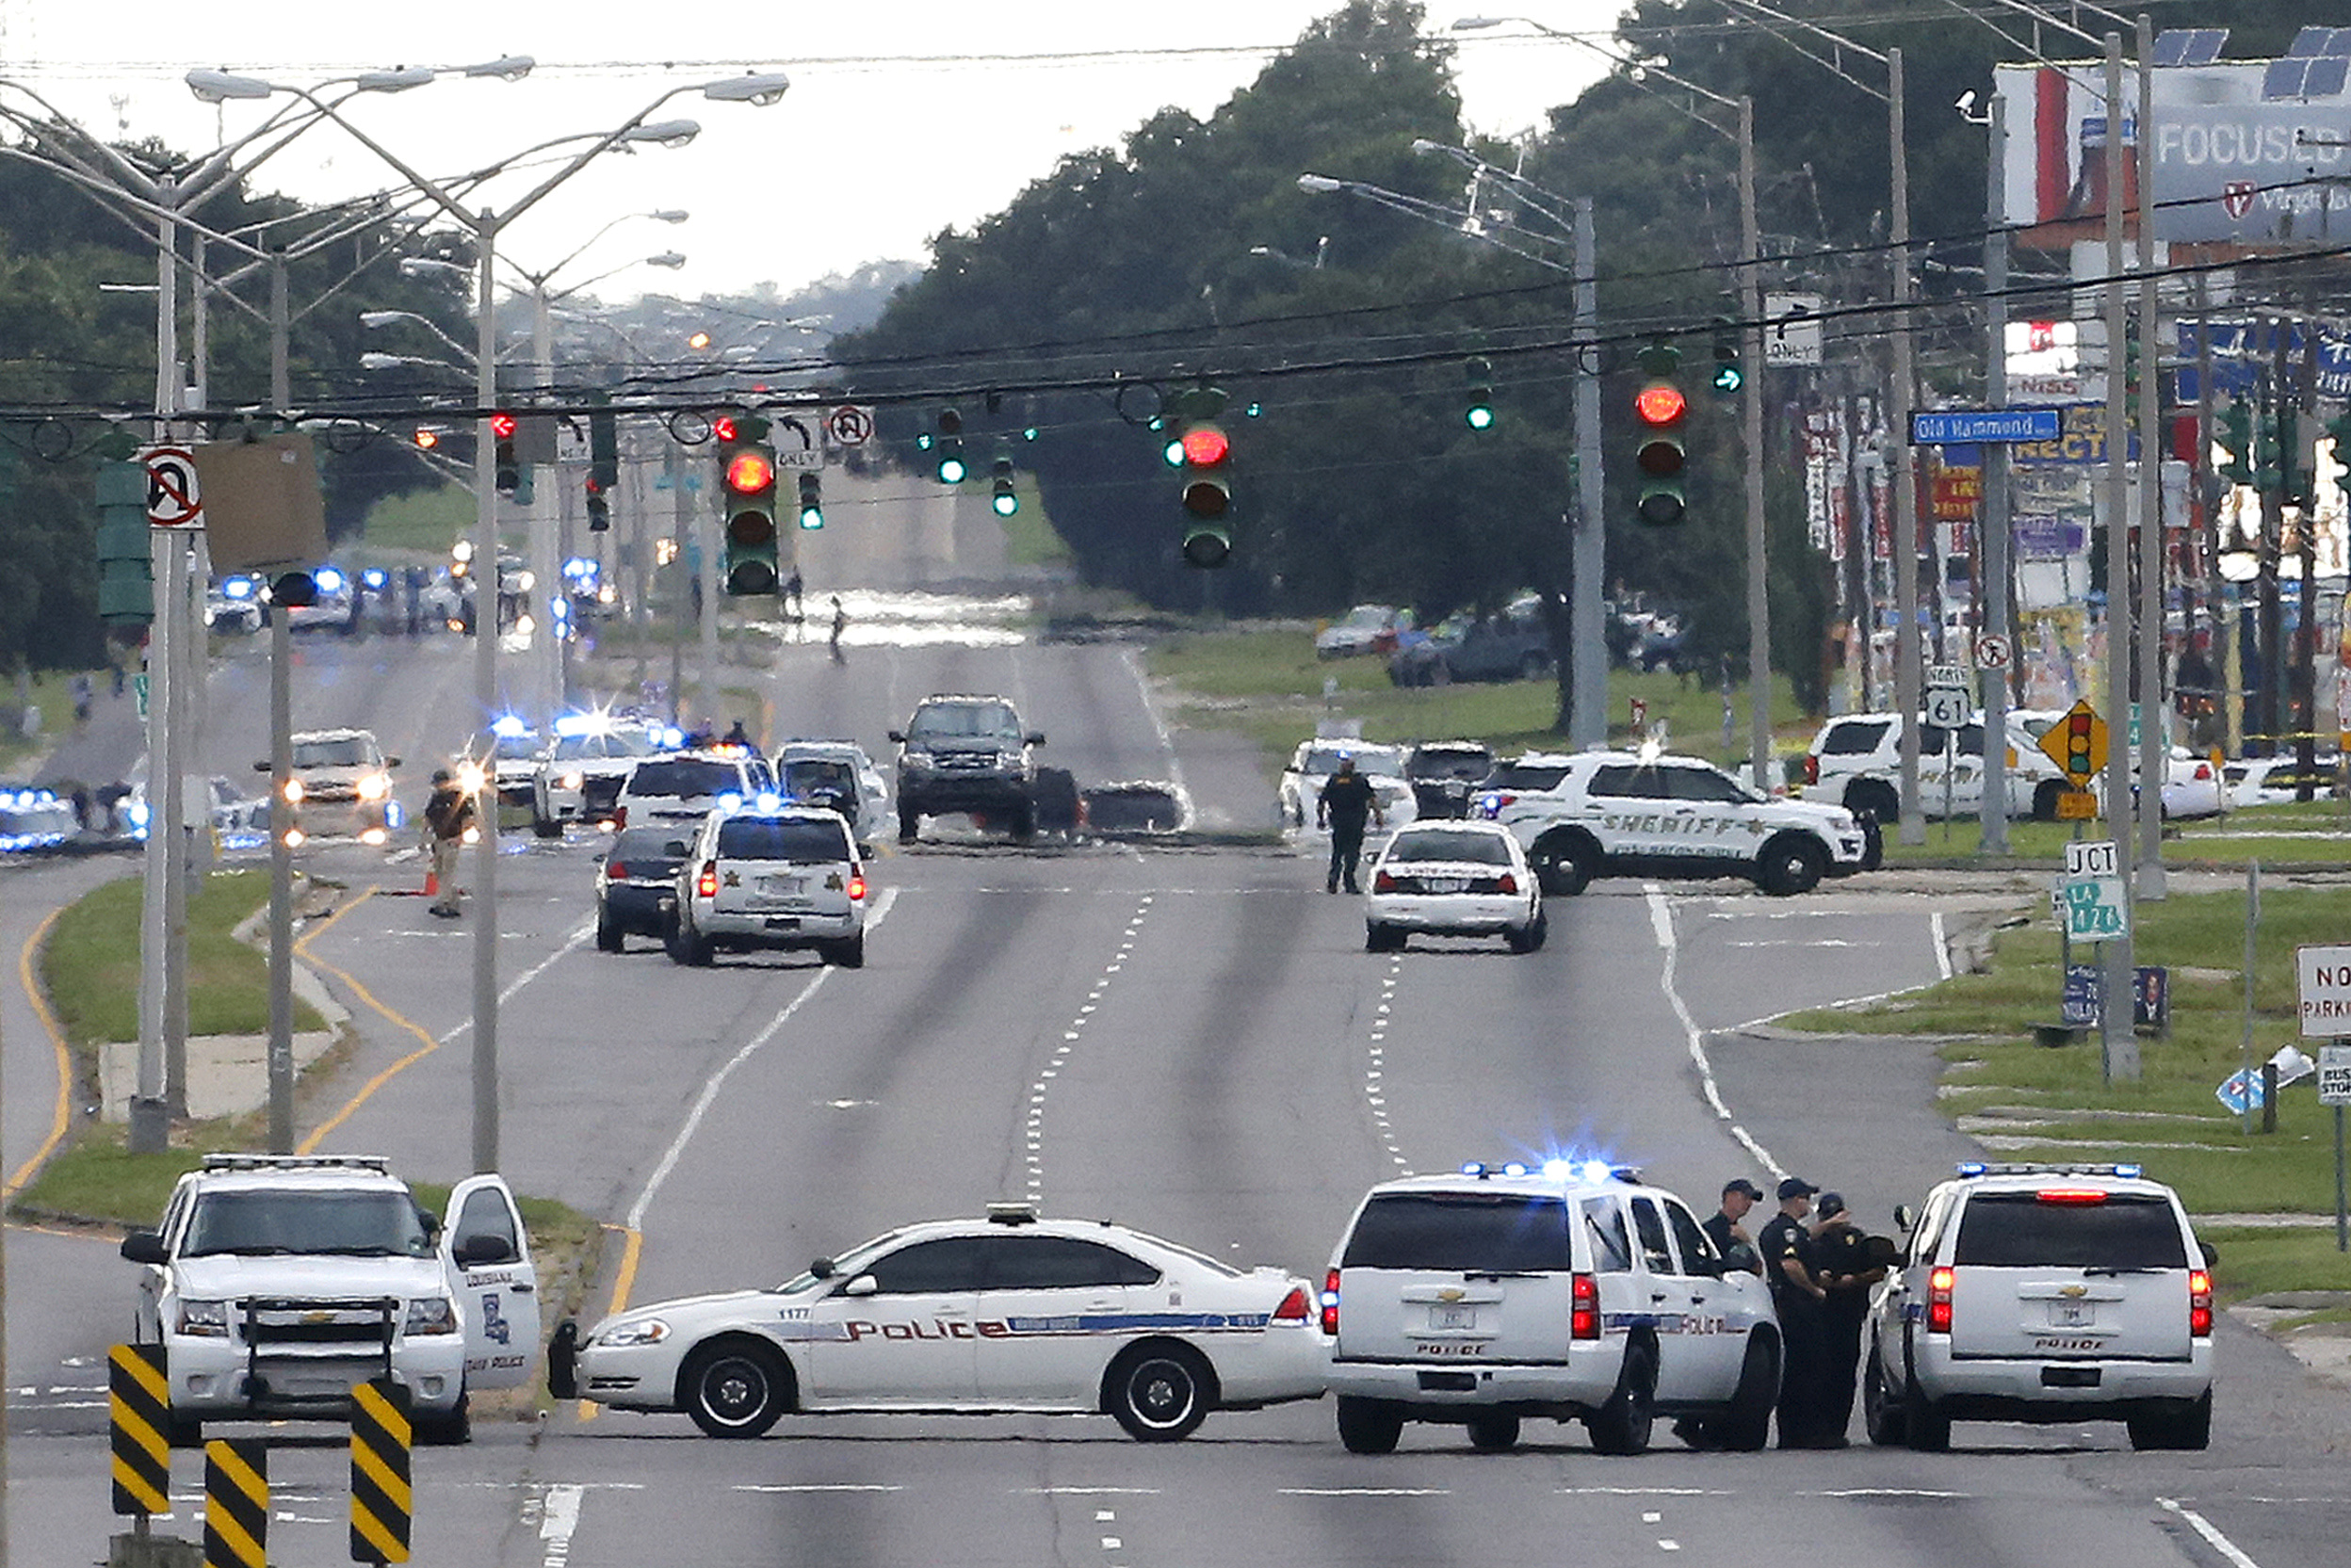 Law enforcement vehicles block access to Airline Highway near the scene of a fatal shooting of police officers in Baton Rouge, Louisiana, U.S., July 17, 2016.